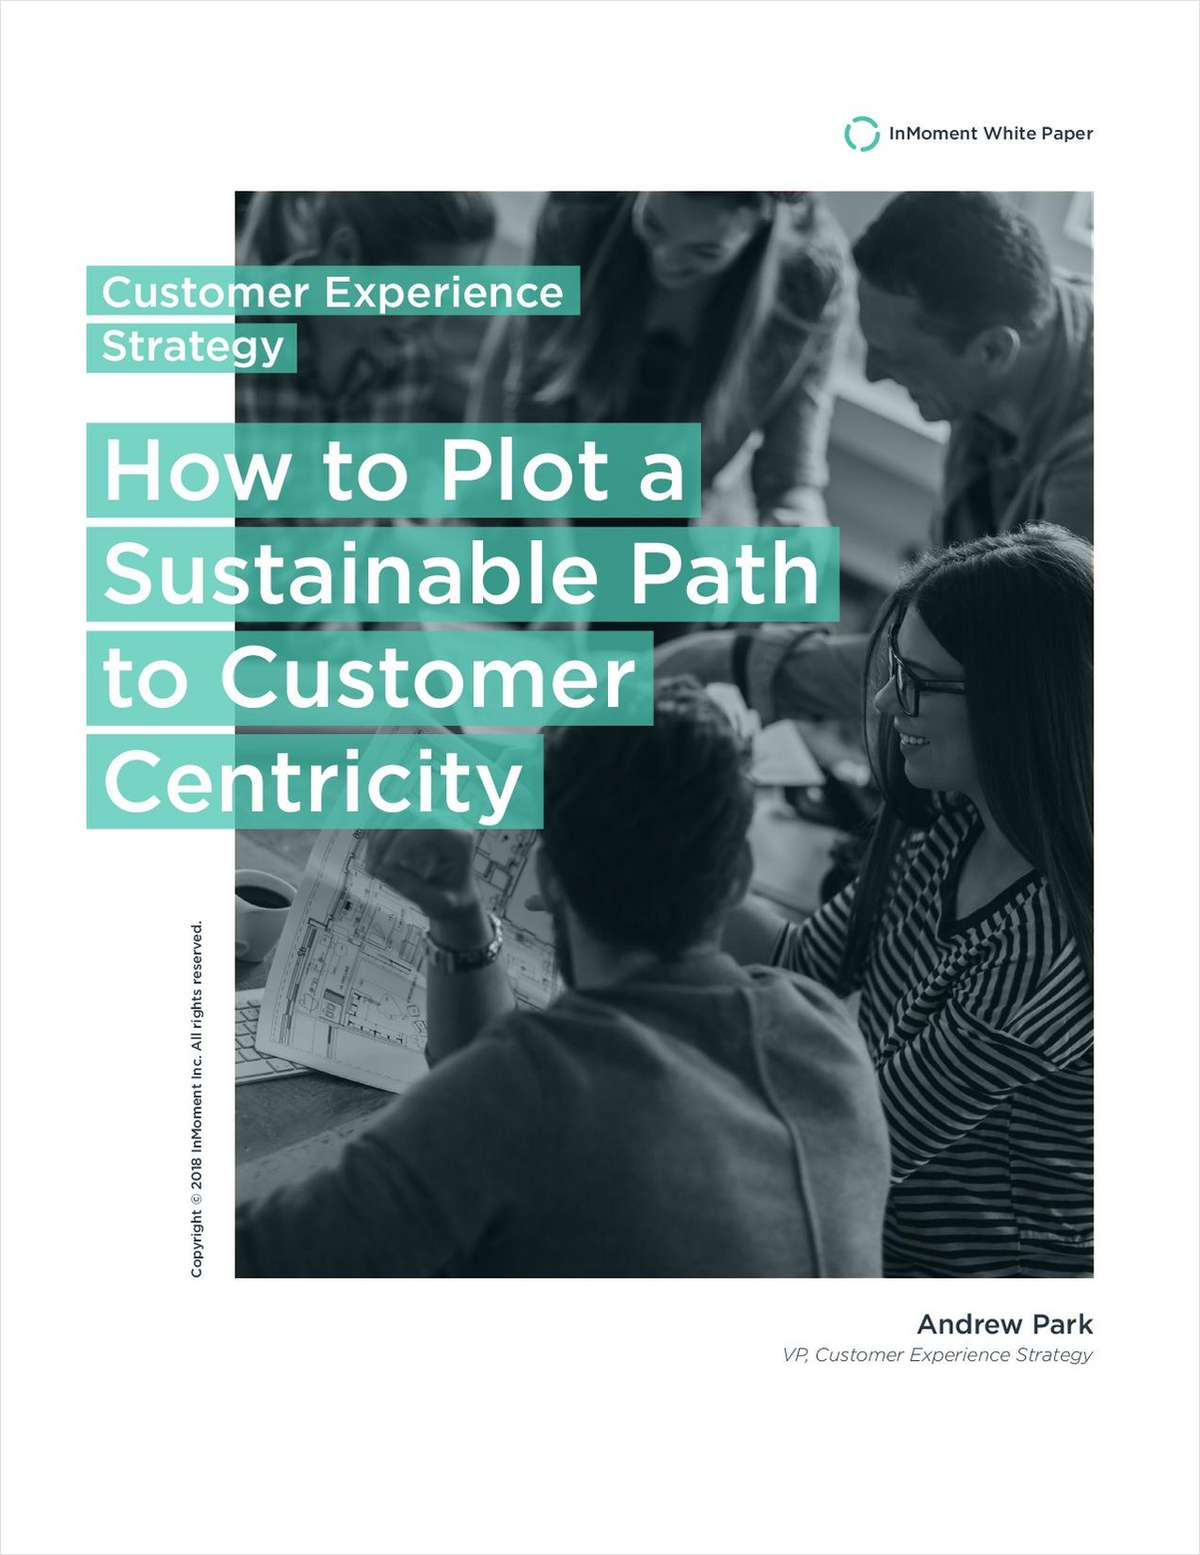 How to Plot a Sustainable Path to Customer Centricity